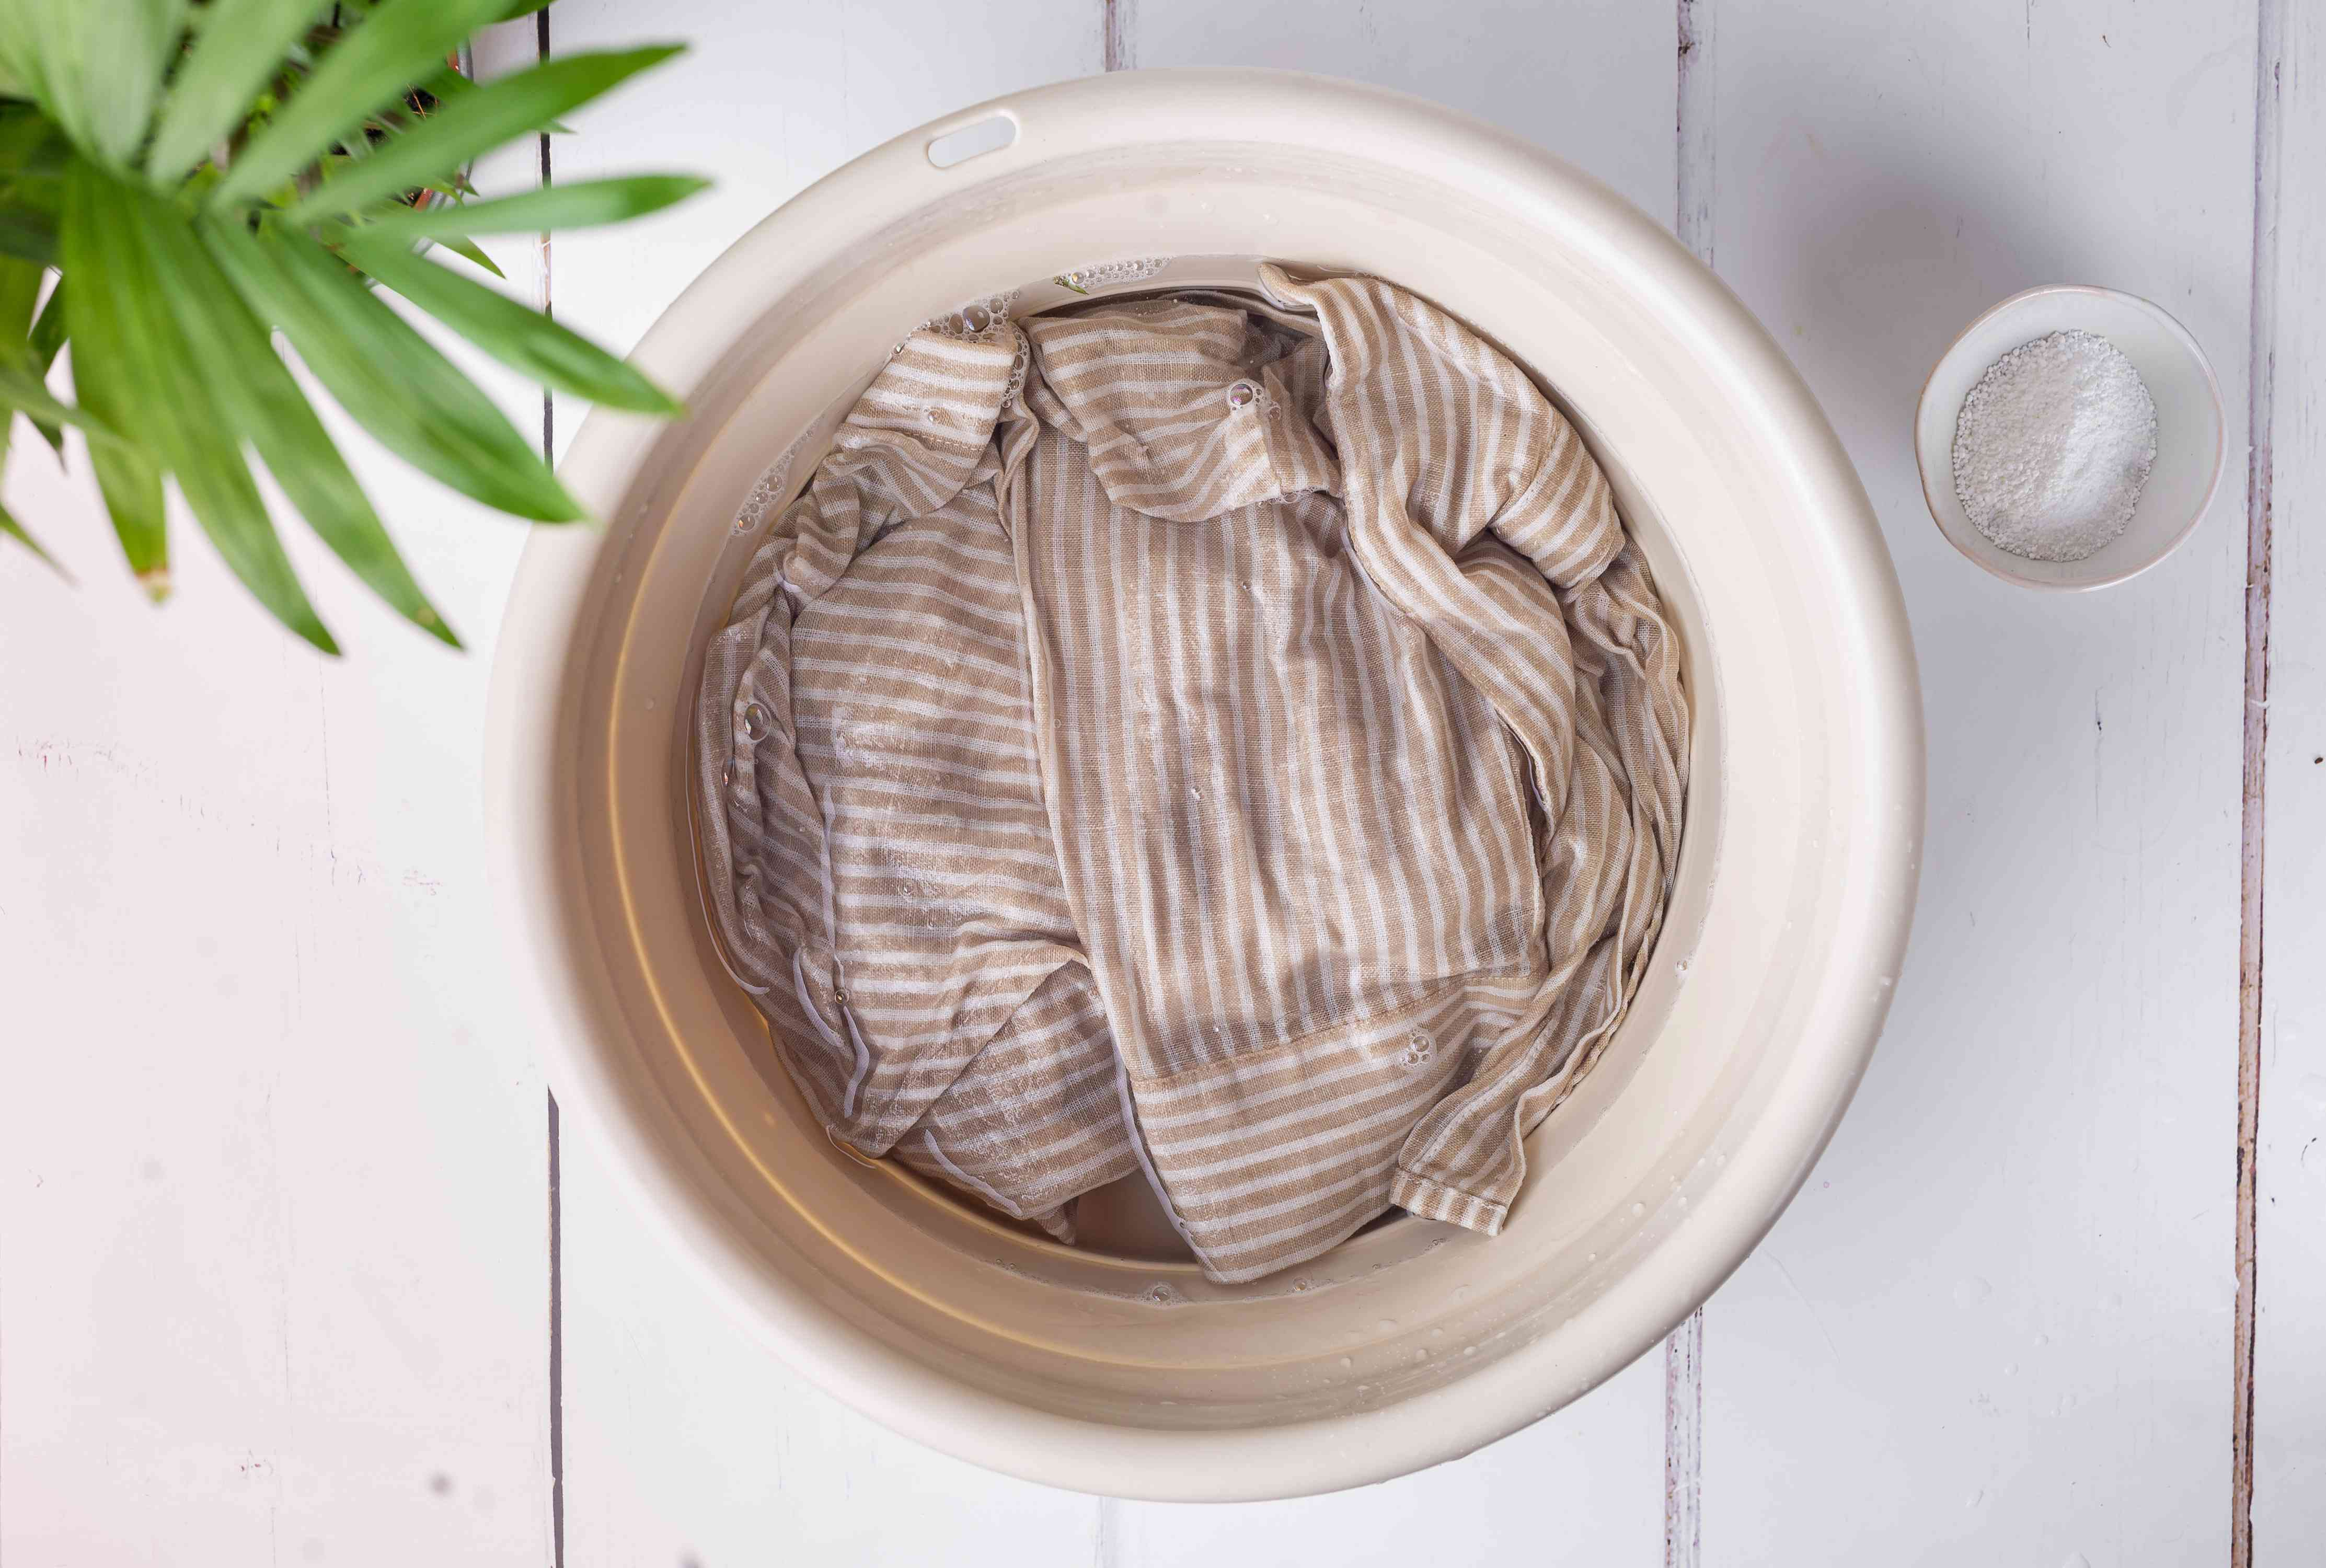 washable shirt in a basin with oxygenated bleach